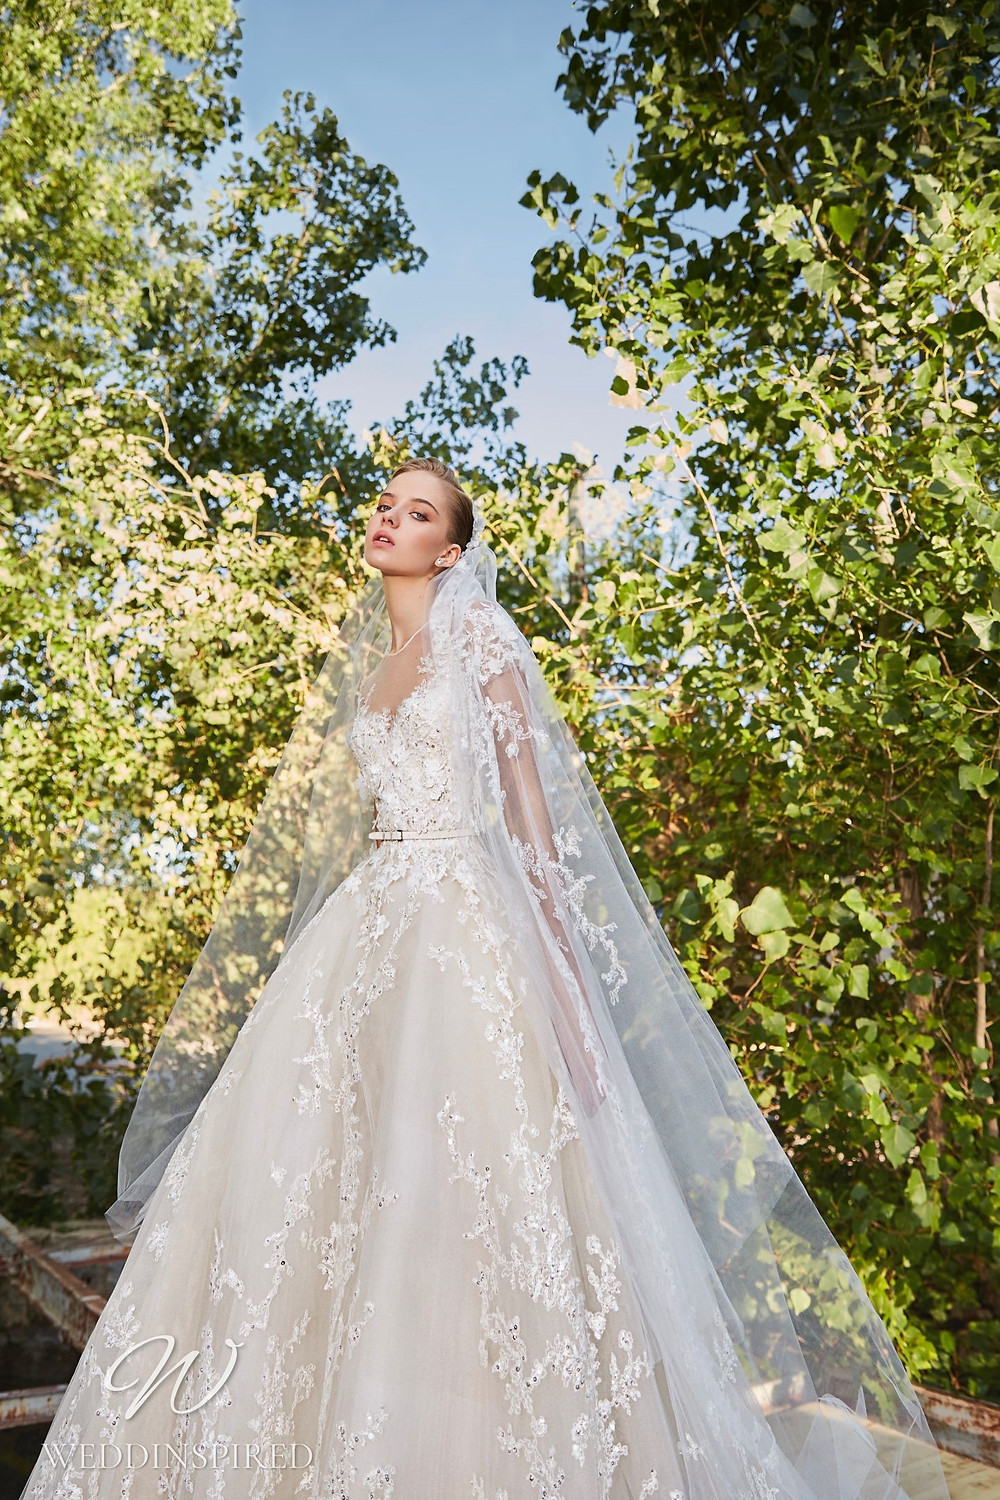 An Elie Saab Spring 2021 lace princess ball gown wedding dress with cap sleeves